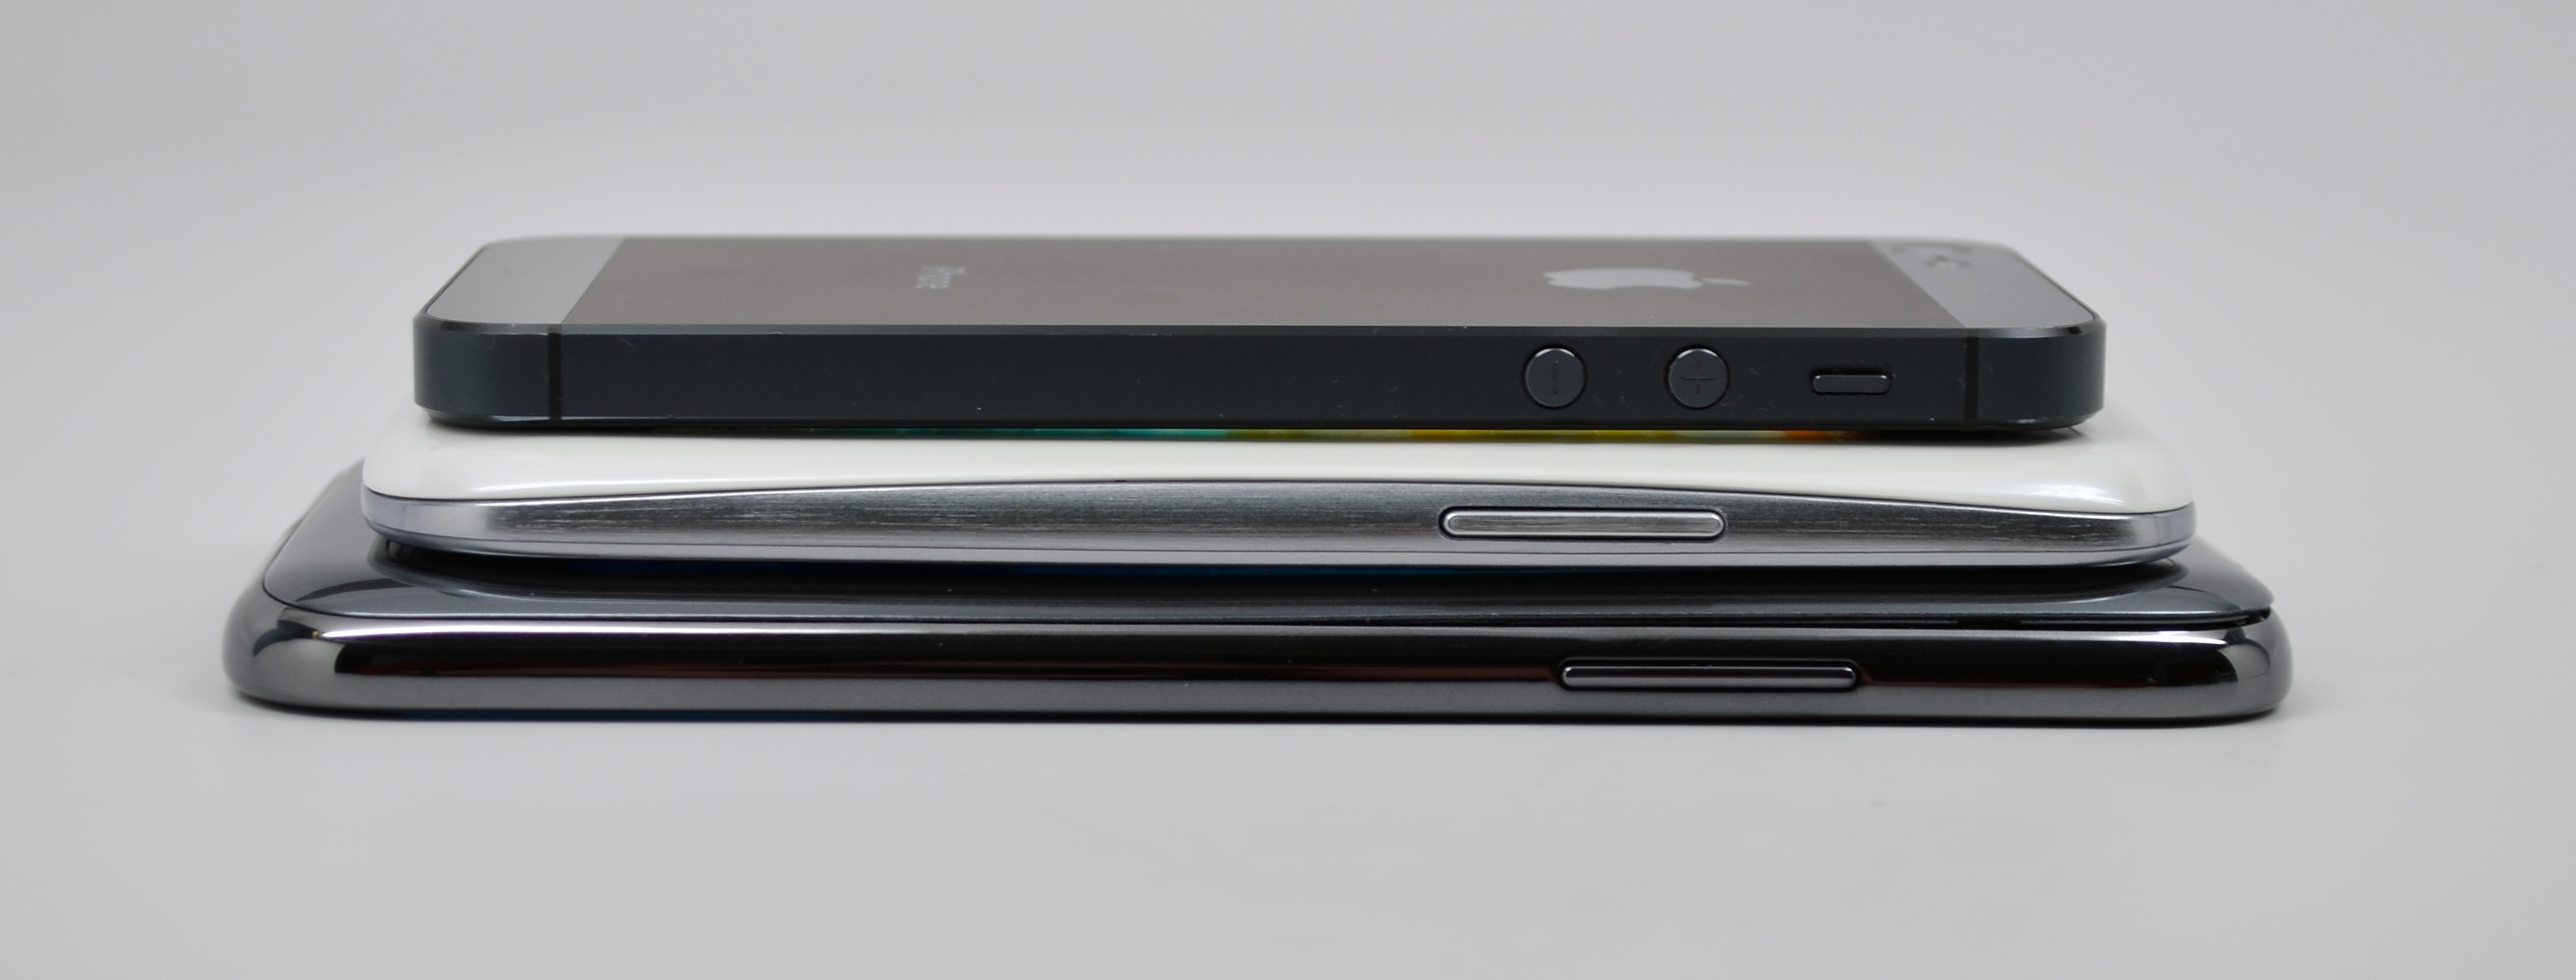 Iphone 6 Vs 7 Thickness